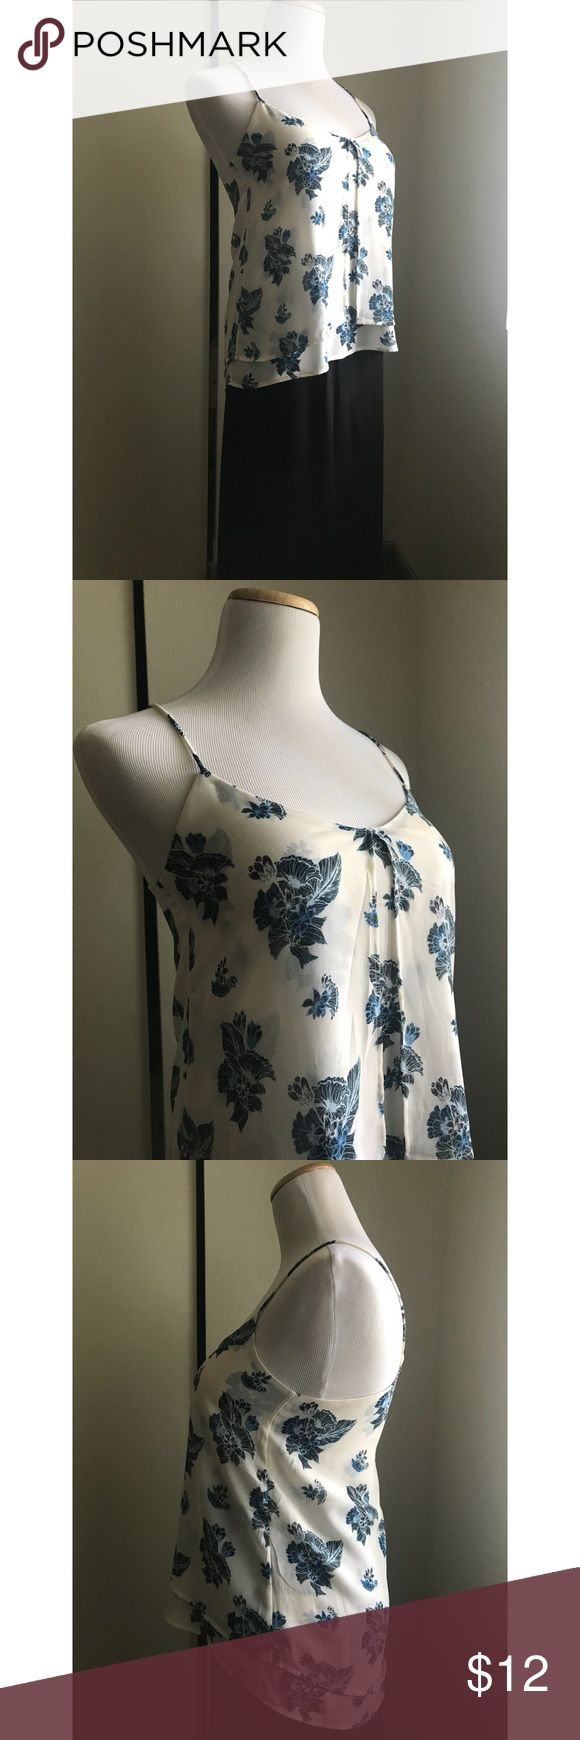 White & Blue Floral Cami White cami top with blue floral prints from H&M.  Perfect for The coming spring or summer ☀️  Used Size: 2 true to size Also comes in color: Olive  $12 each but negotiable if you buy the 2 😉  *Skirt also from H&M but not for sale H&M Tops Camisoles